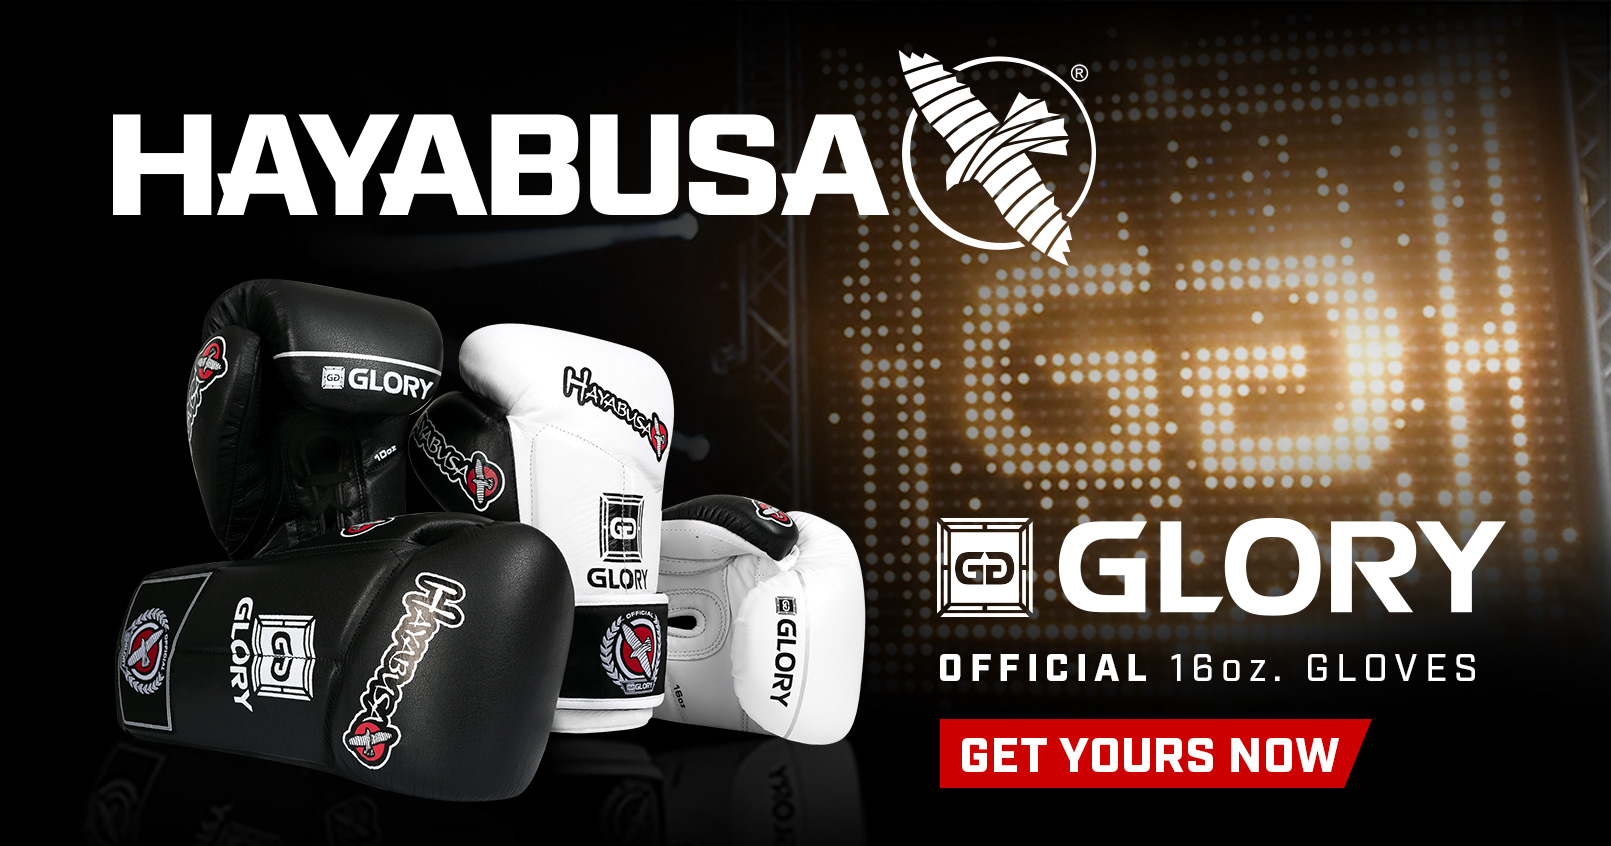 Glory - 16oz Gloves - Launch